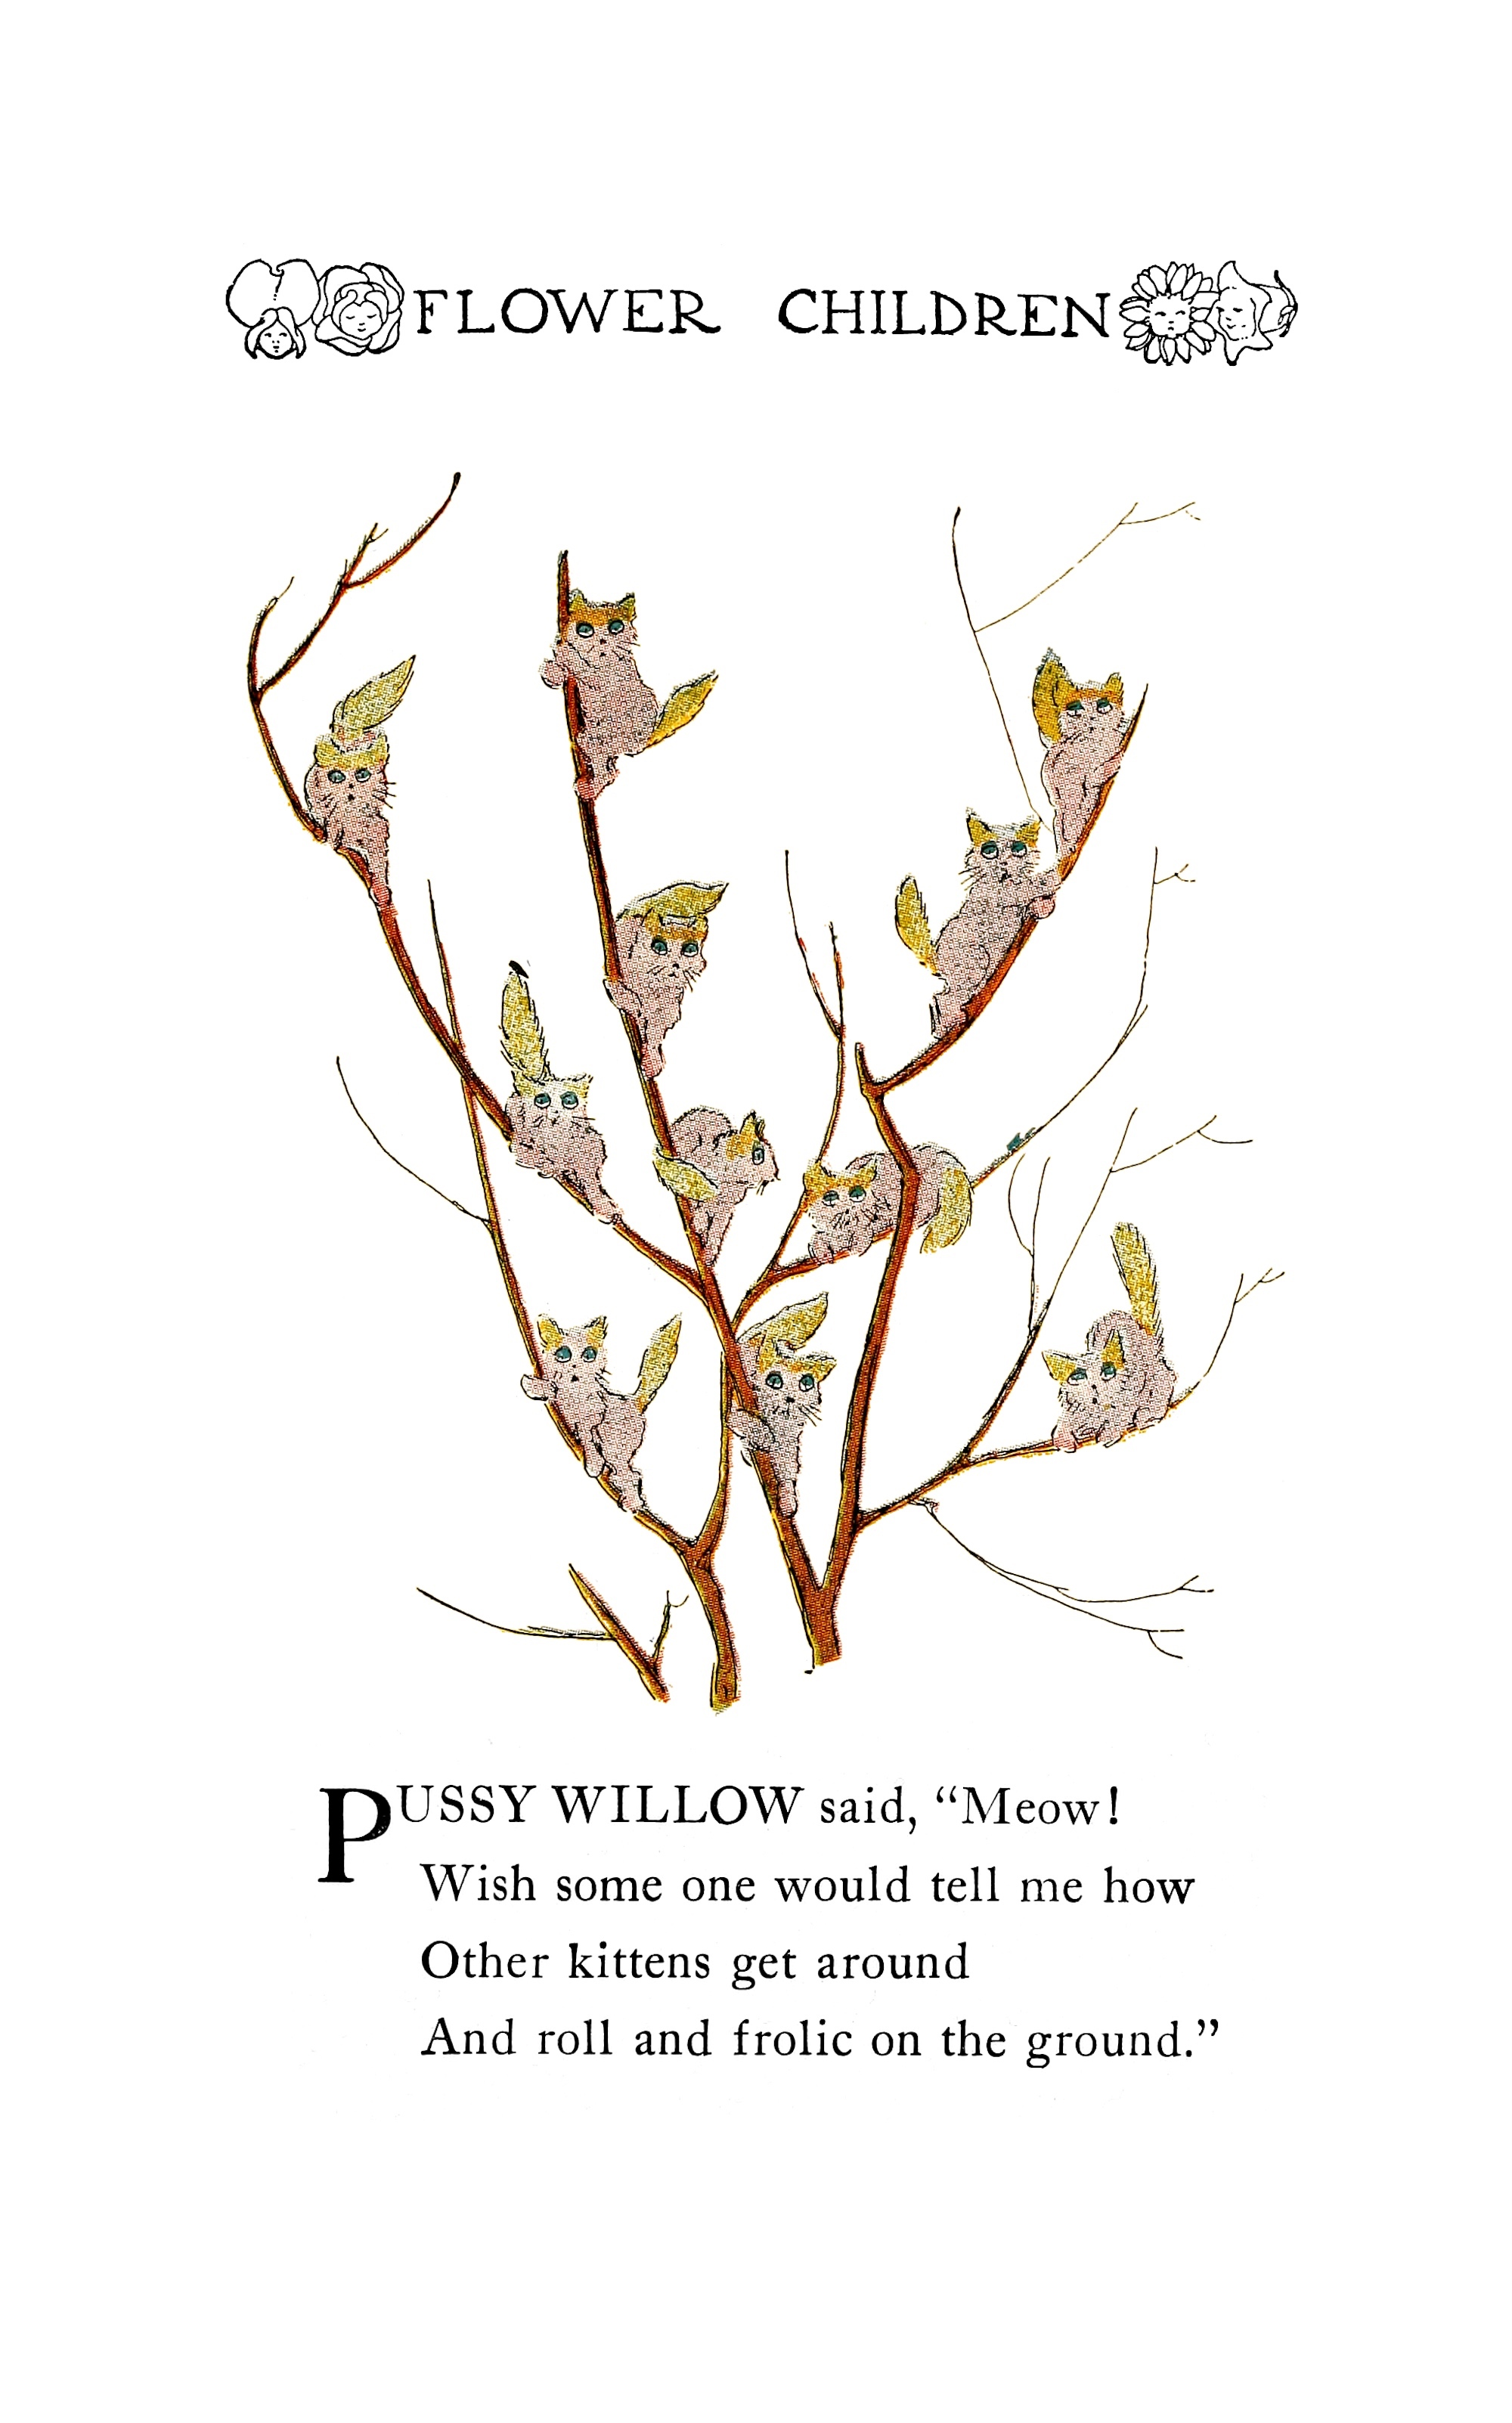 1910 Pussy Willows Flower Children by Elizabeth Gordon with illustration by M.T. (Penny) Ross.